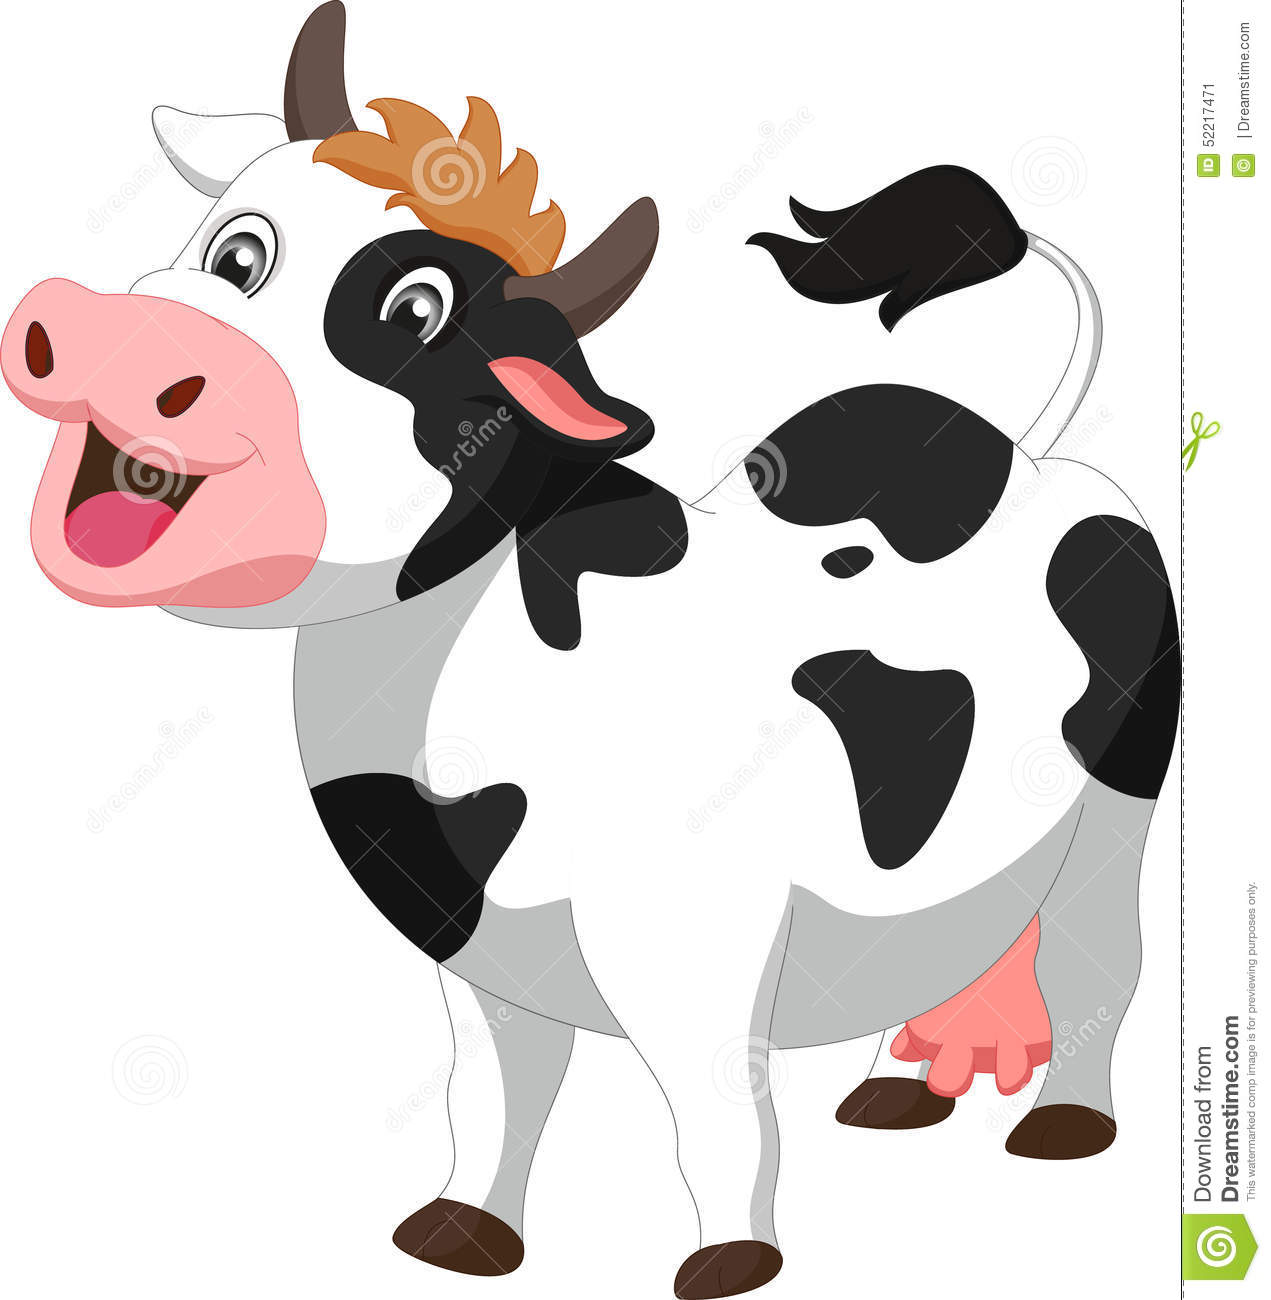 Vache dessin couleur the image kid has it - Vache en dessin ...